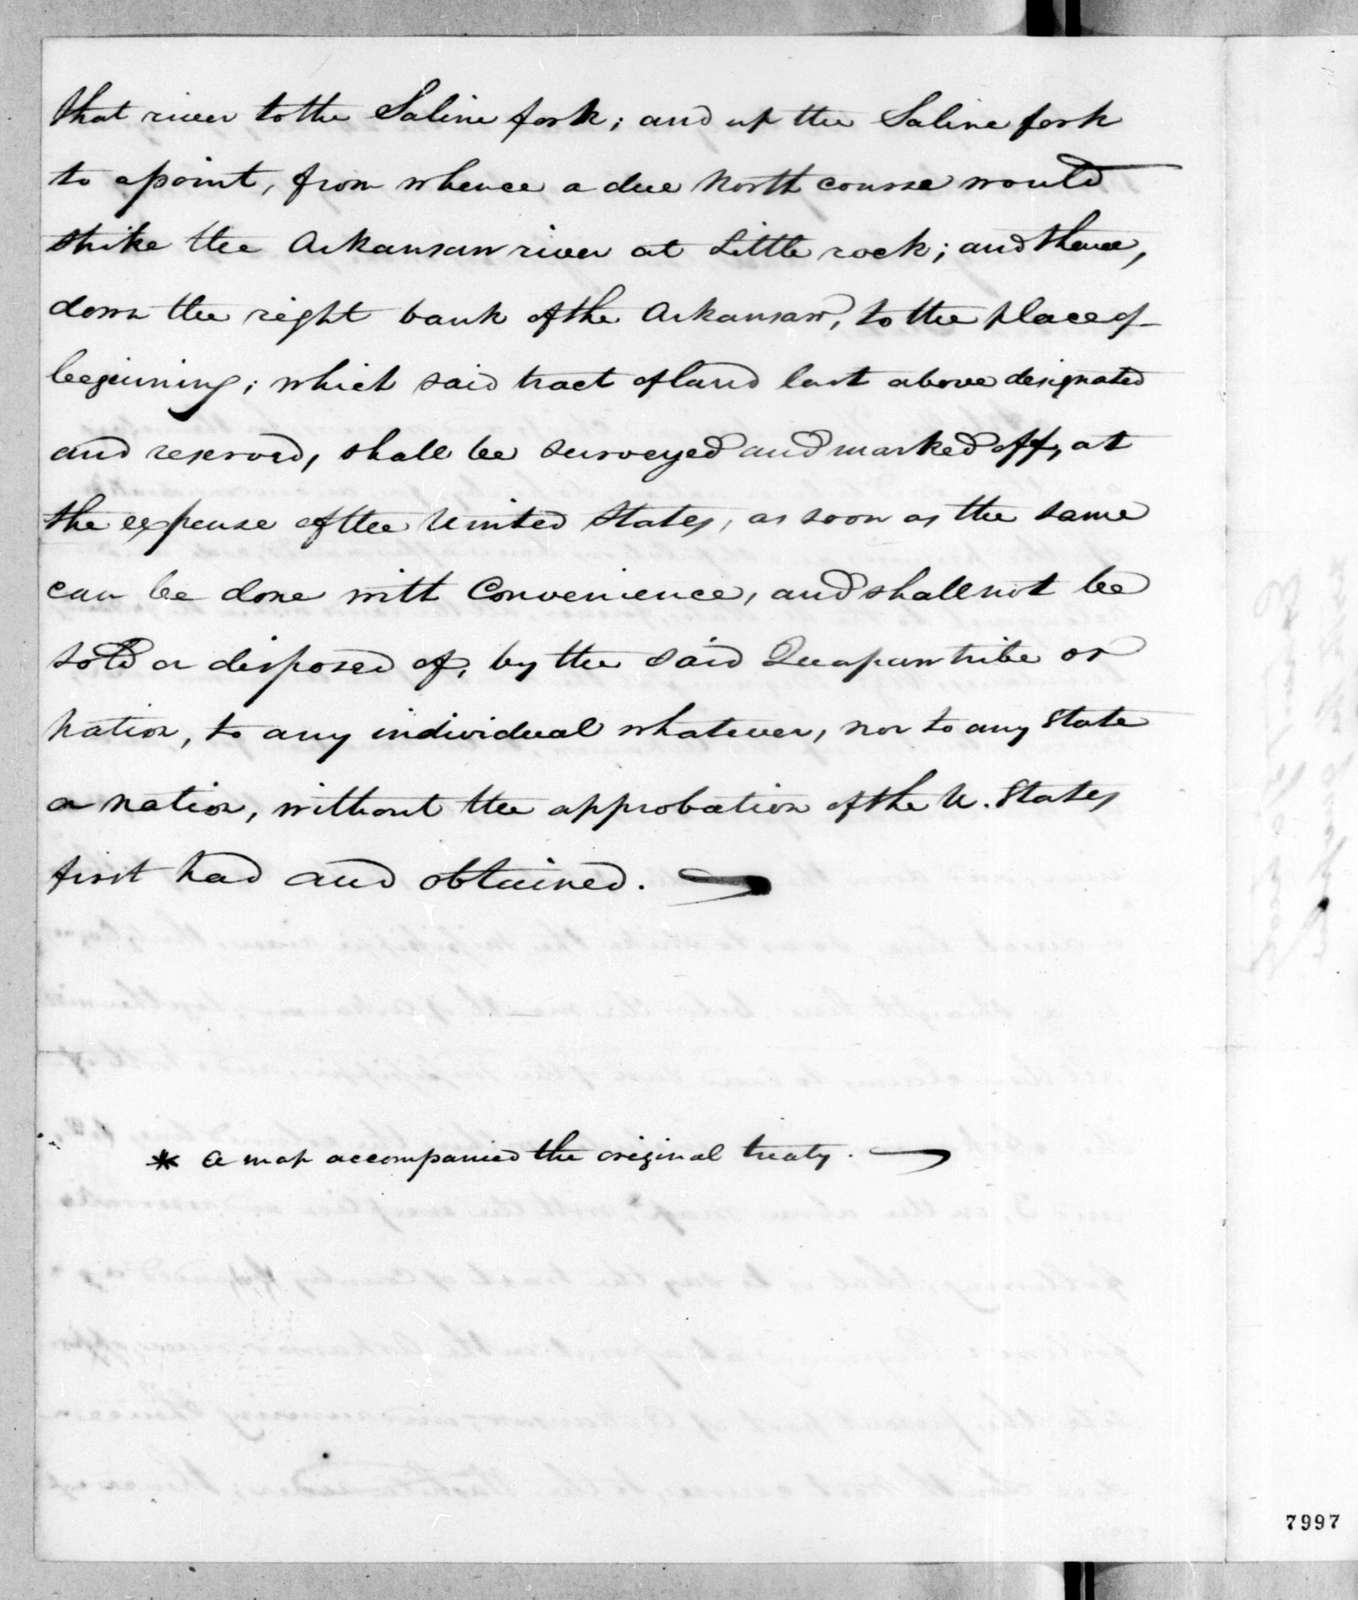 William Clark to Rene Auguste Chouteau, August 24, 1818